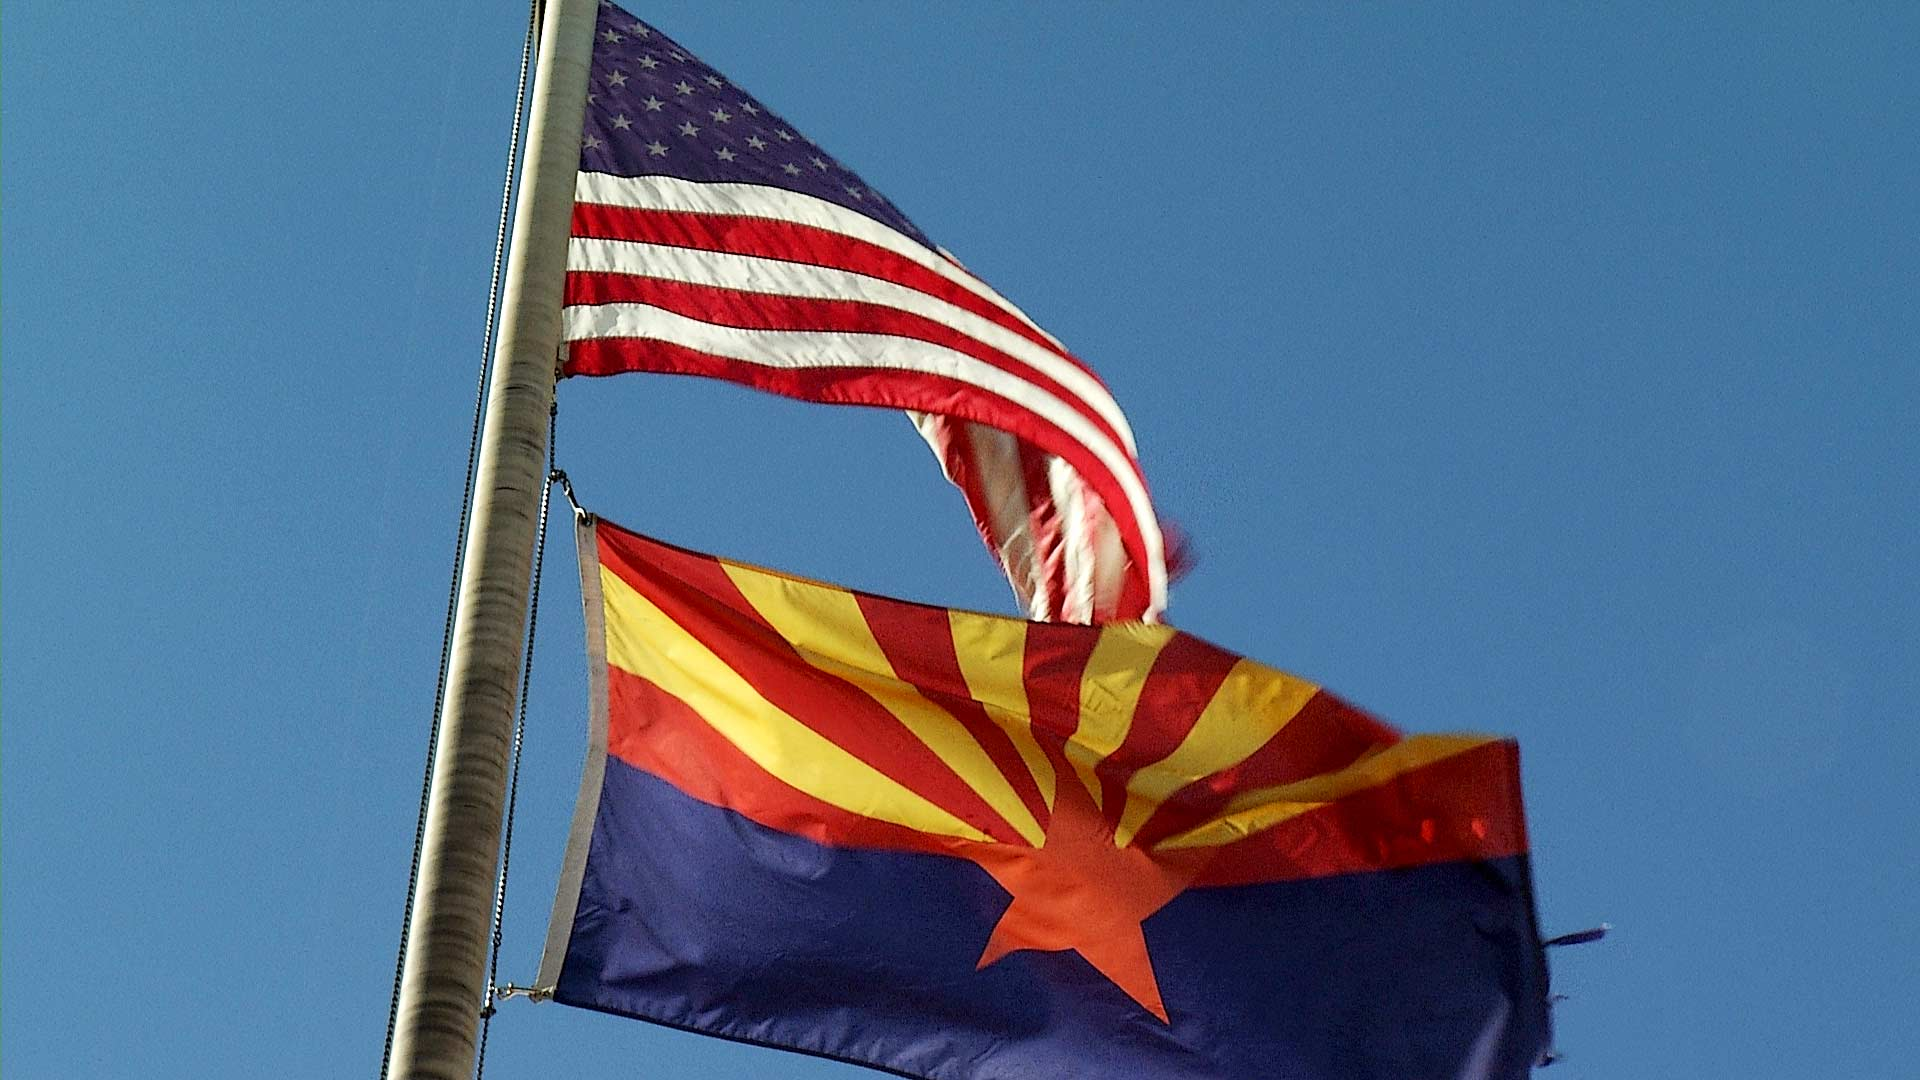 A flag post carrying both the Arizona flag and United States flag wave in the wind.